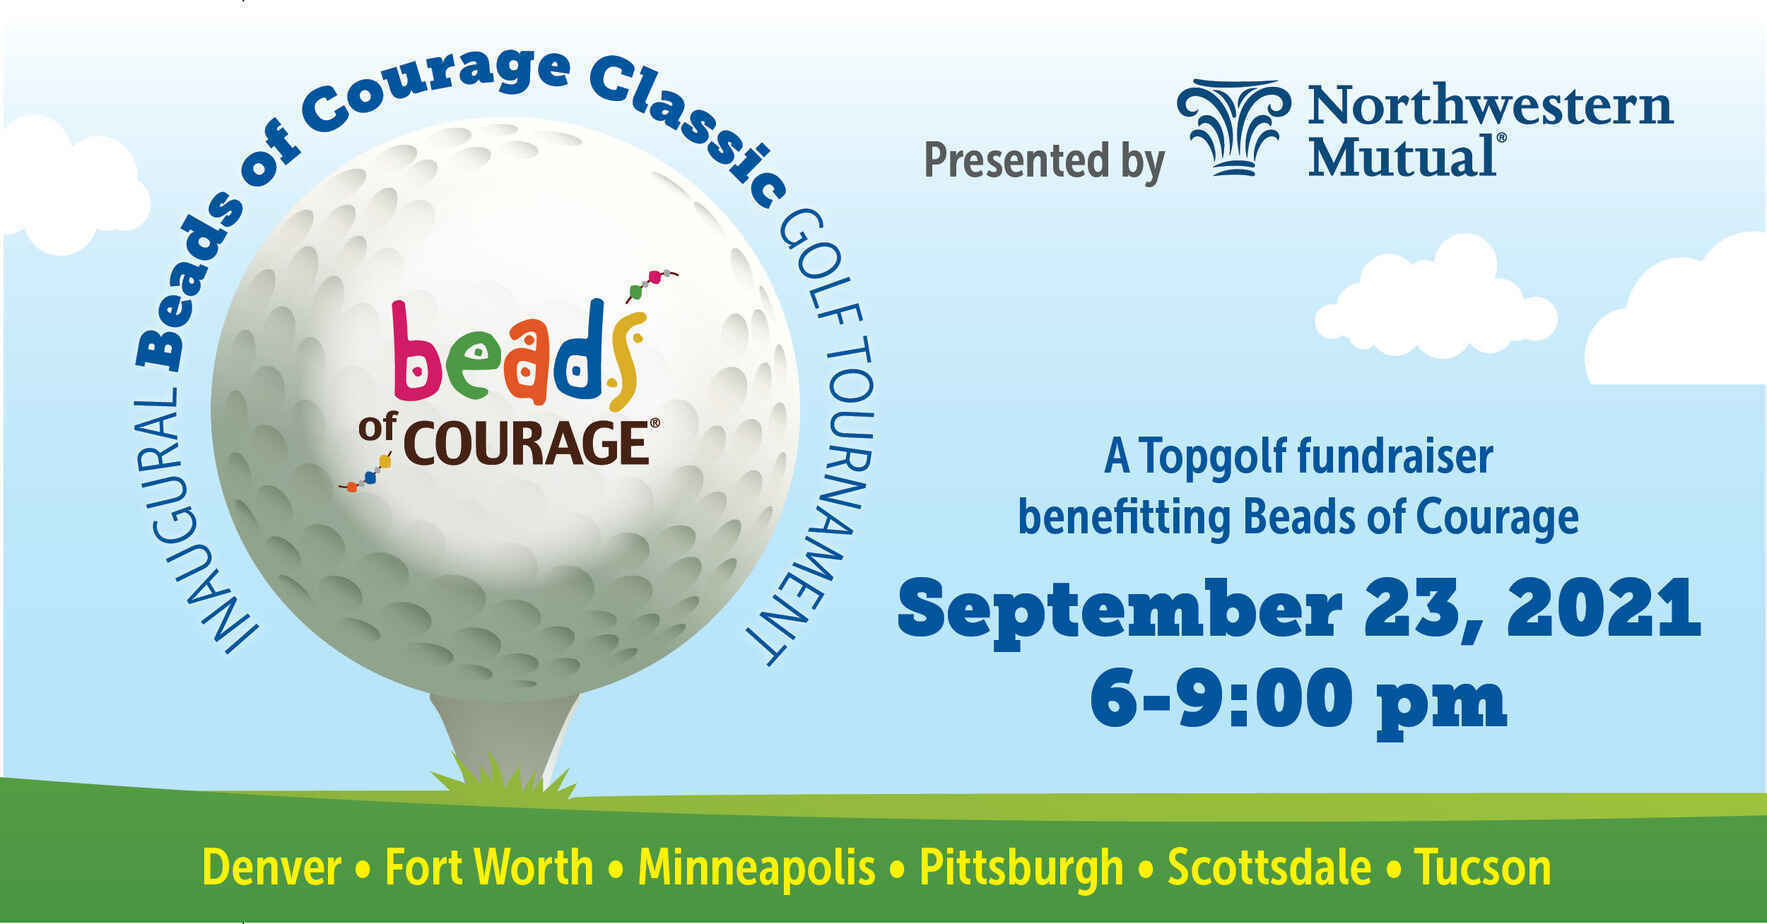 Sponsor a Player for the 2021 Beads of Courage Classic Golf Tournament image